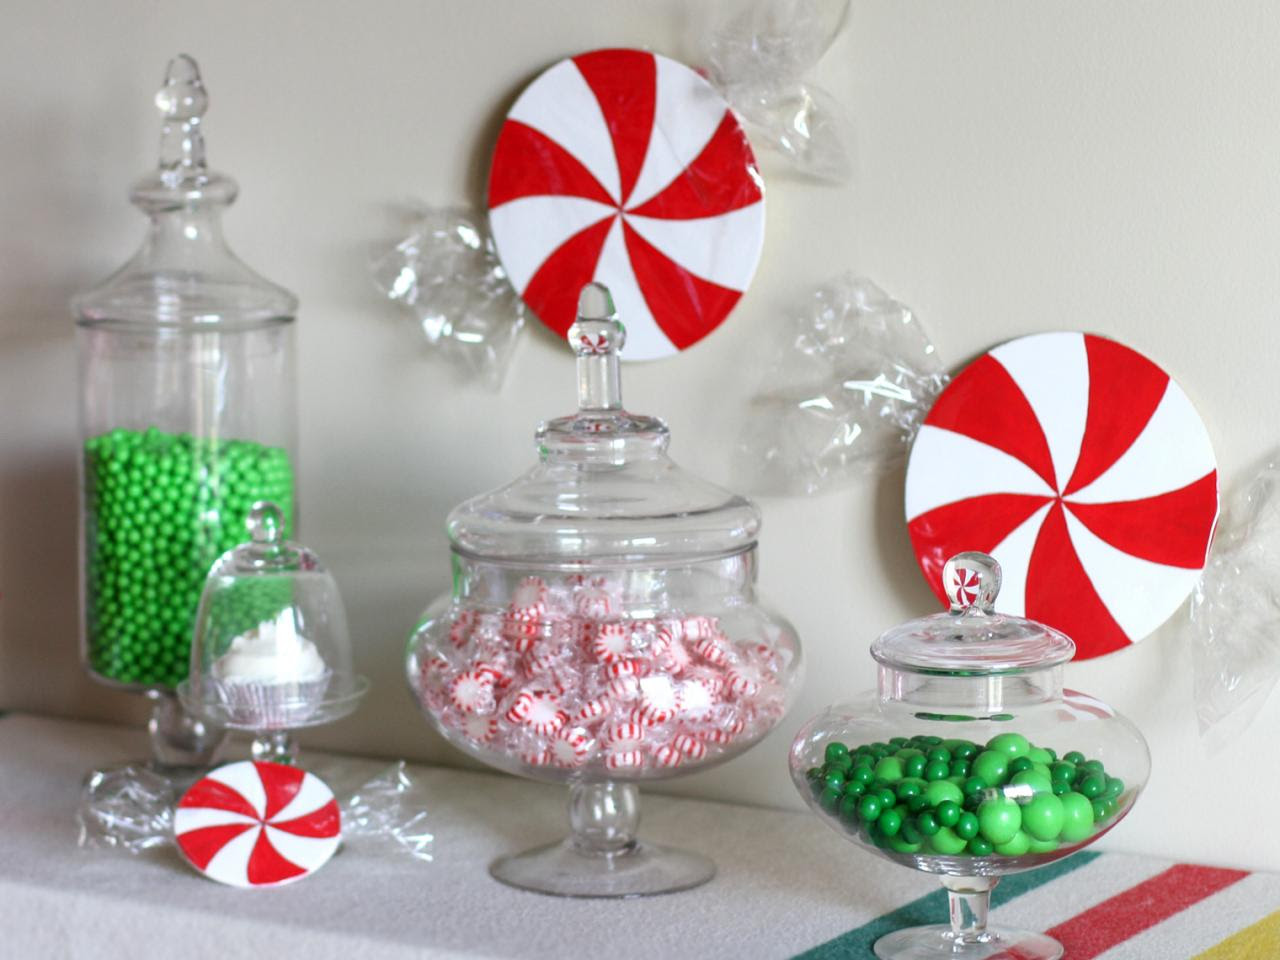 Decorations Christmas Diy Candyland Pictures Candy Outdoor Images